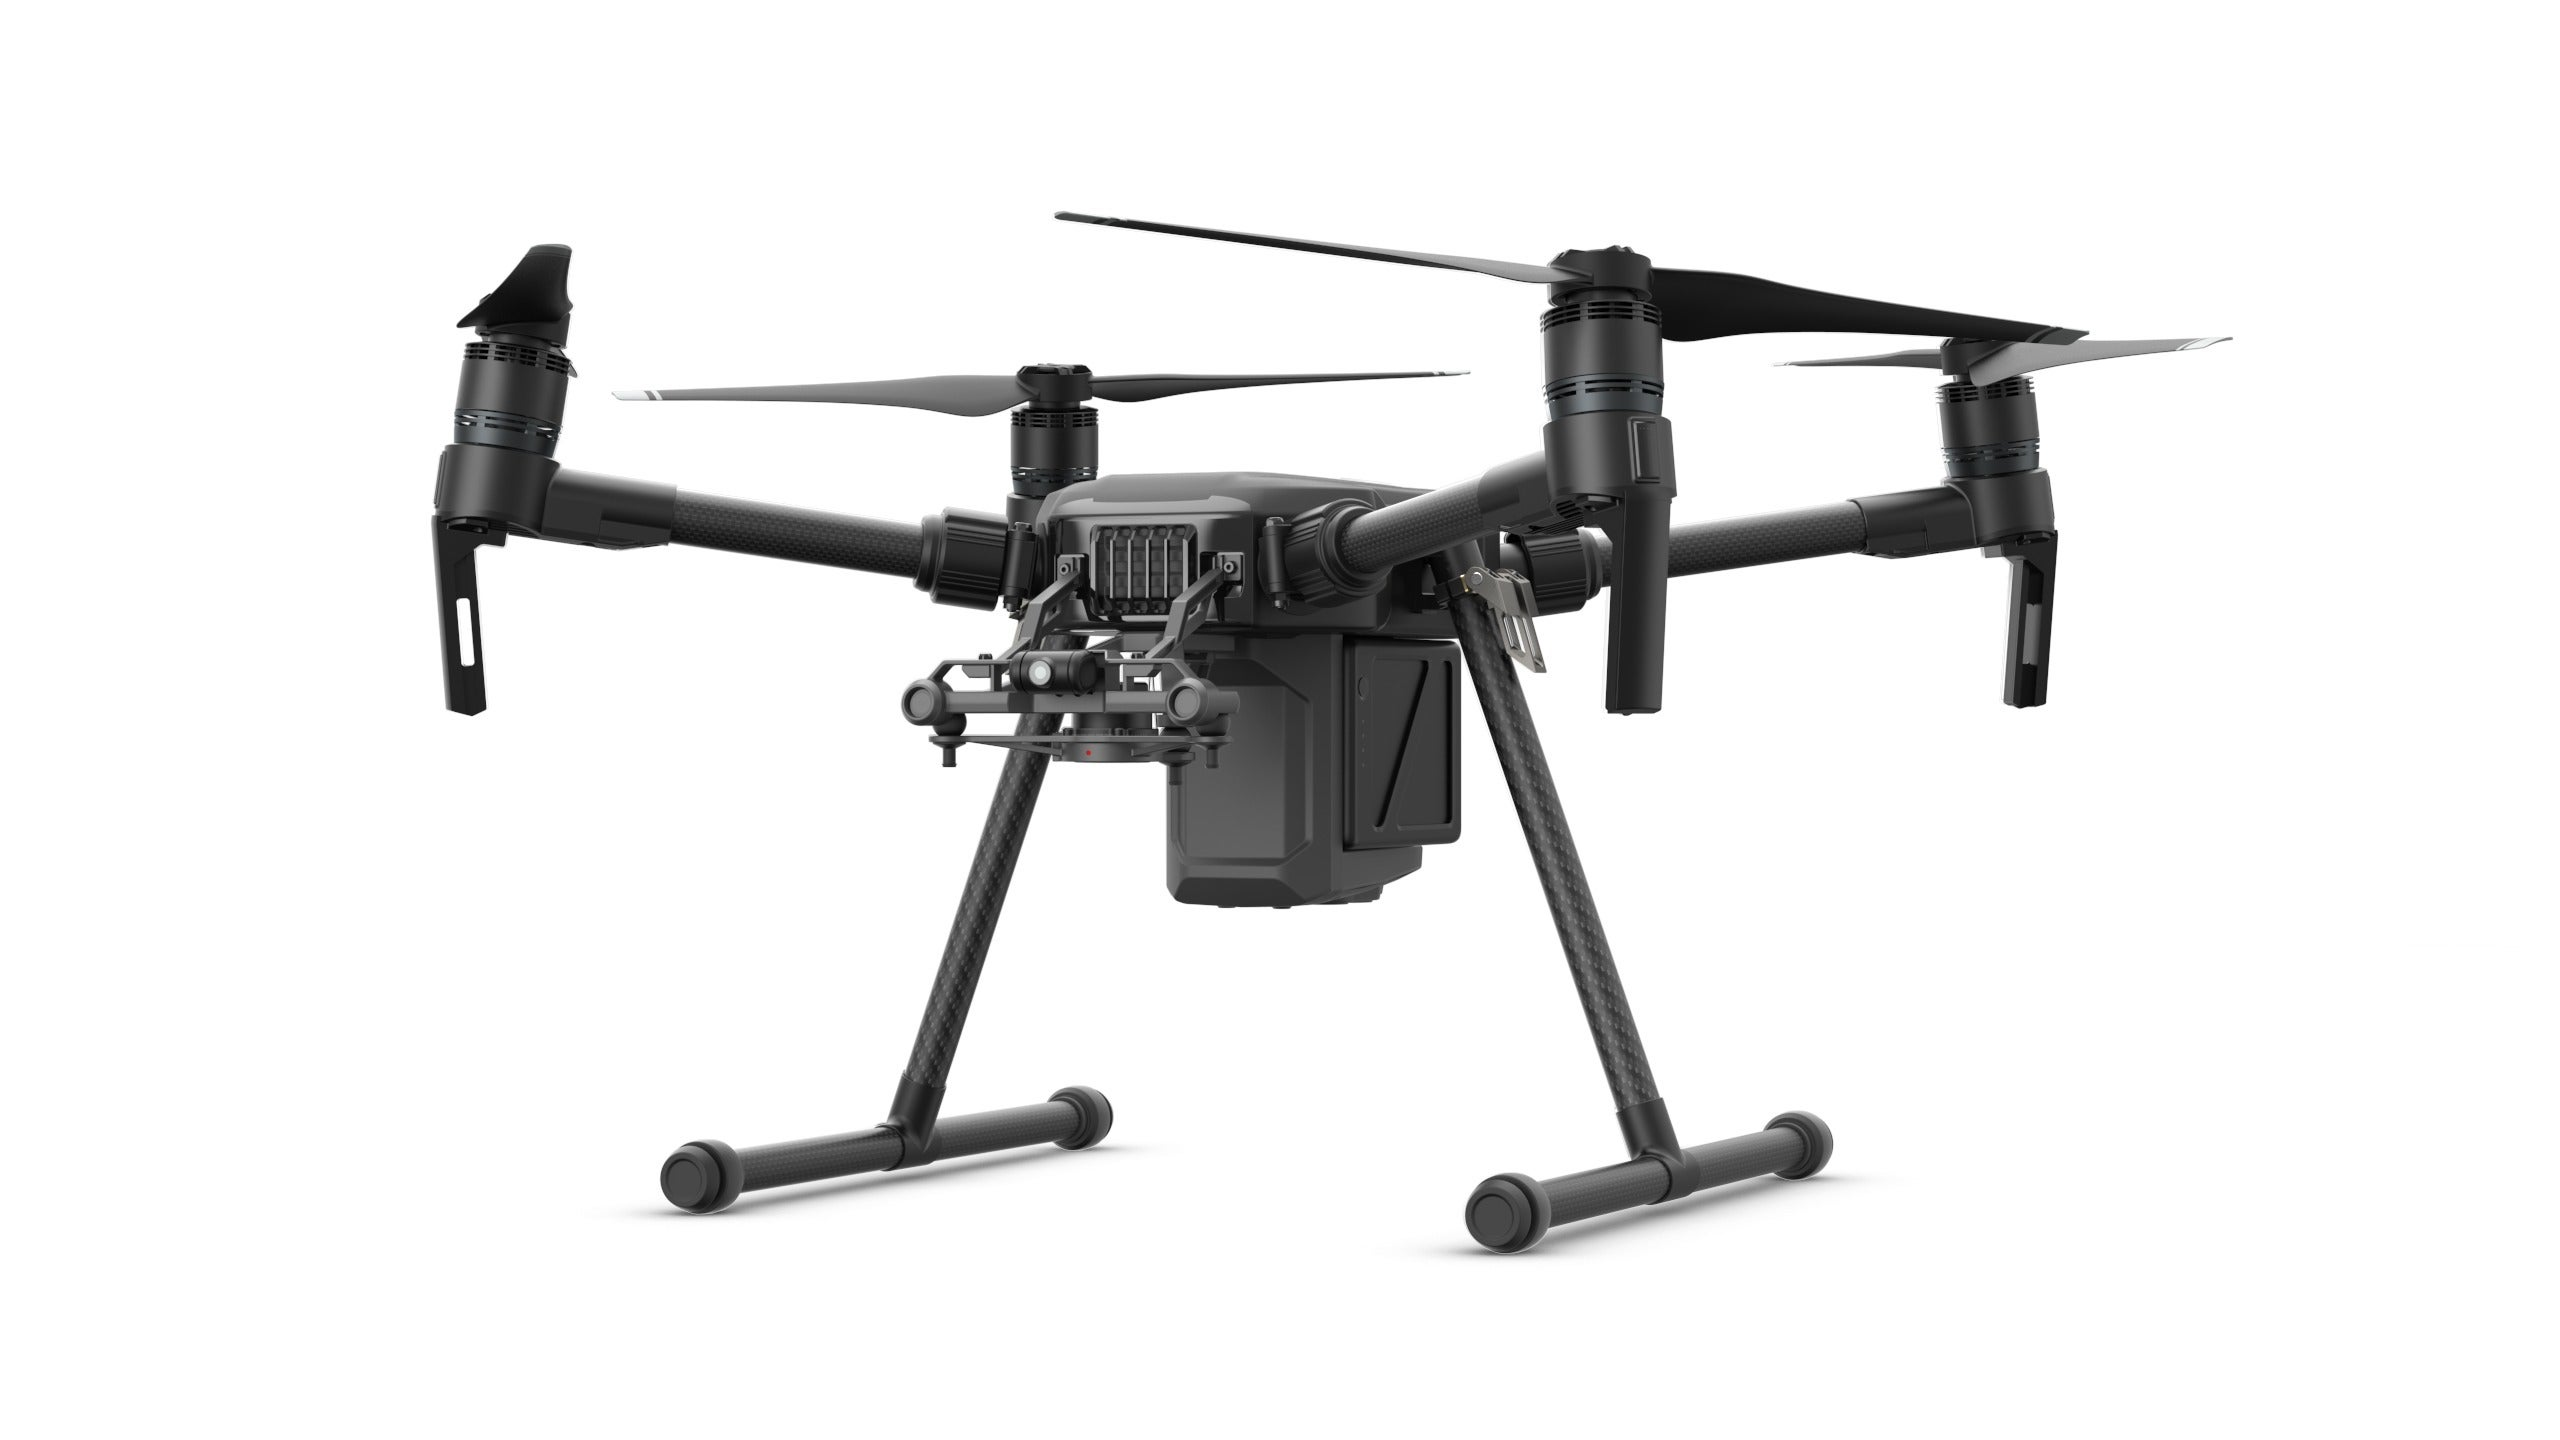 DJI's rugged Matrice 200 series drones go where no drone